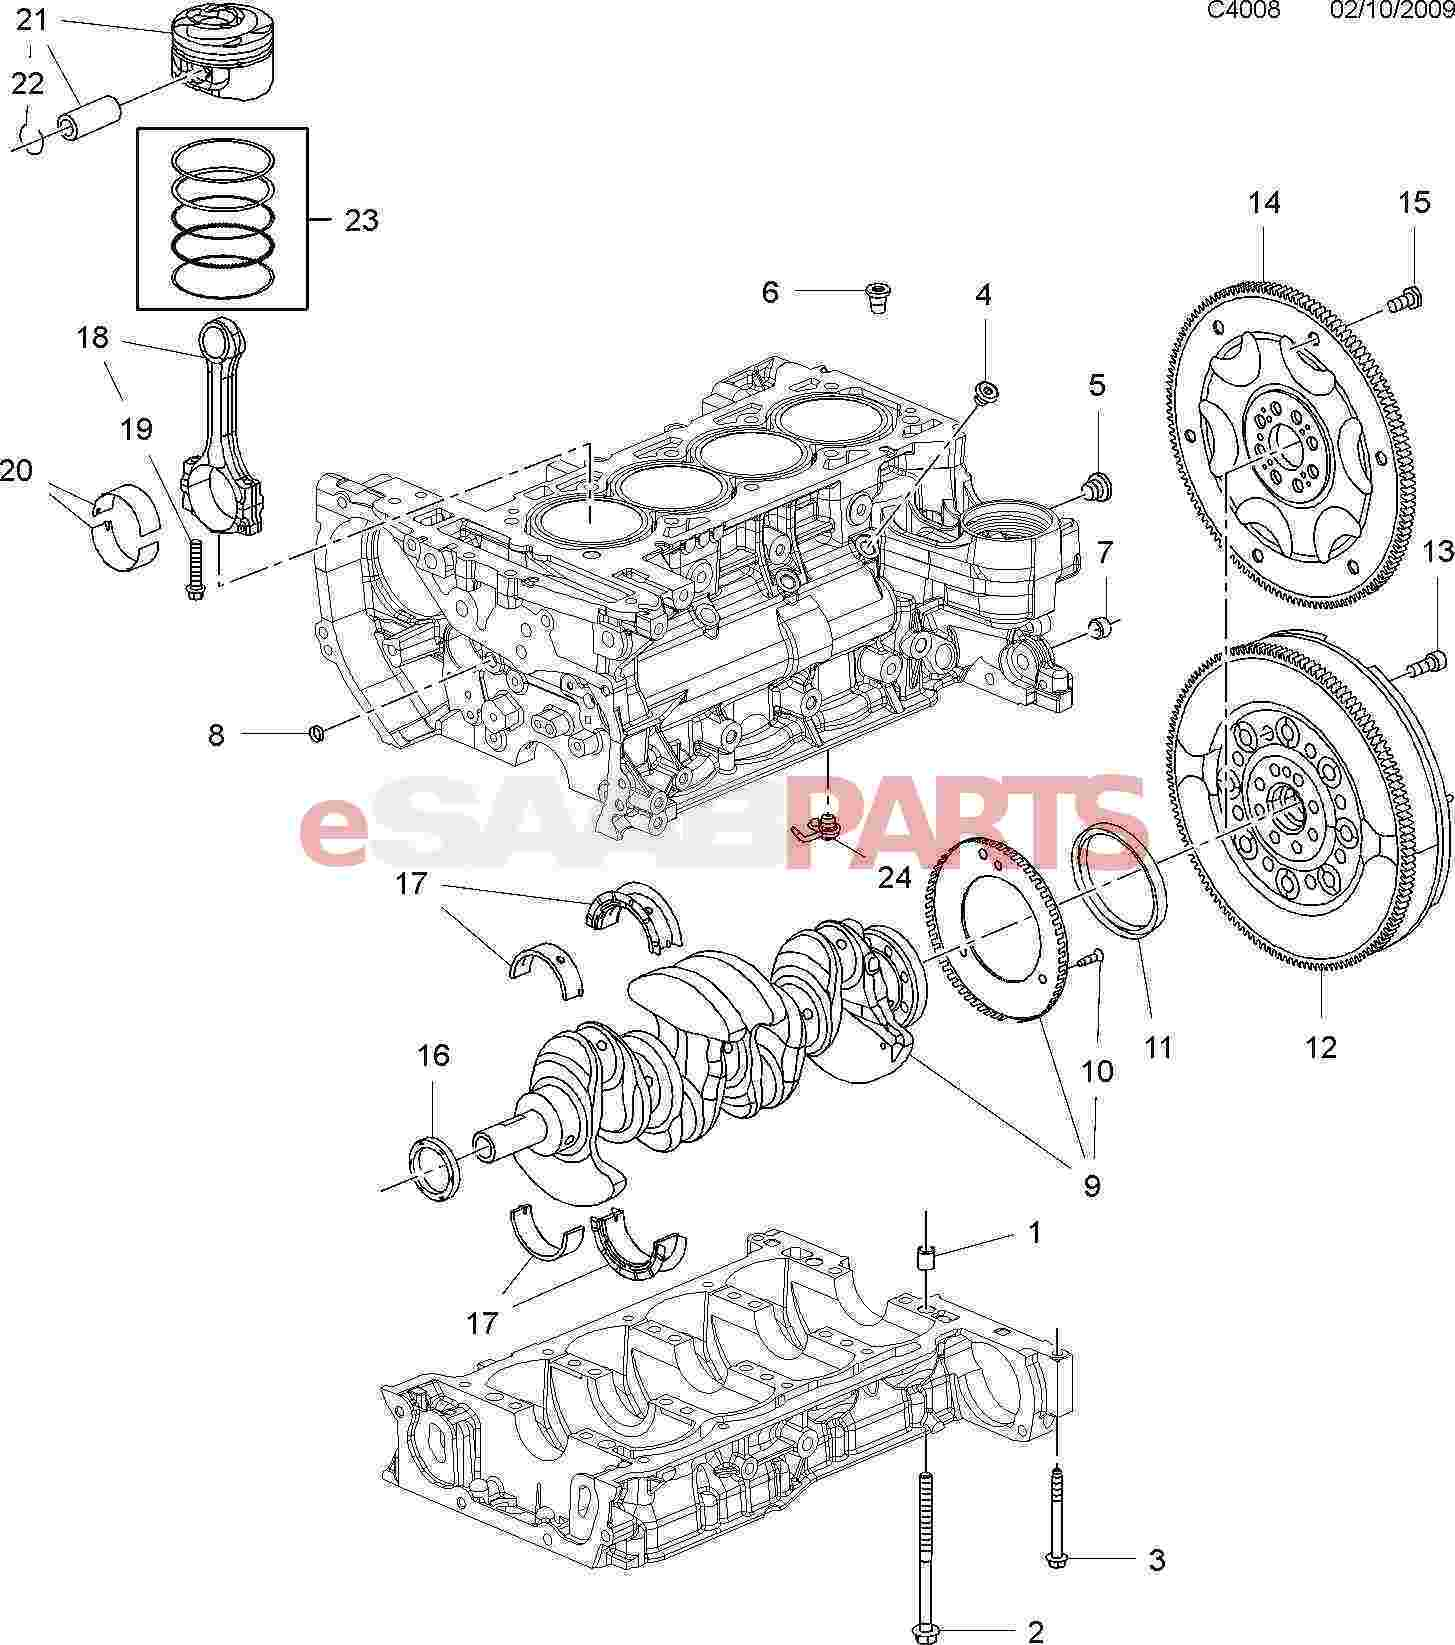 2006 Cobalt Fuel Filter - Wiring Diagrams